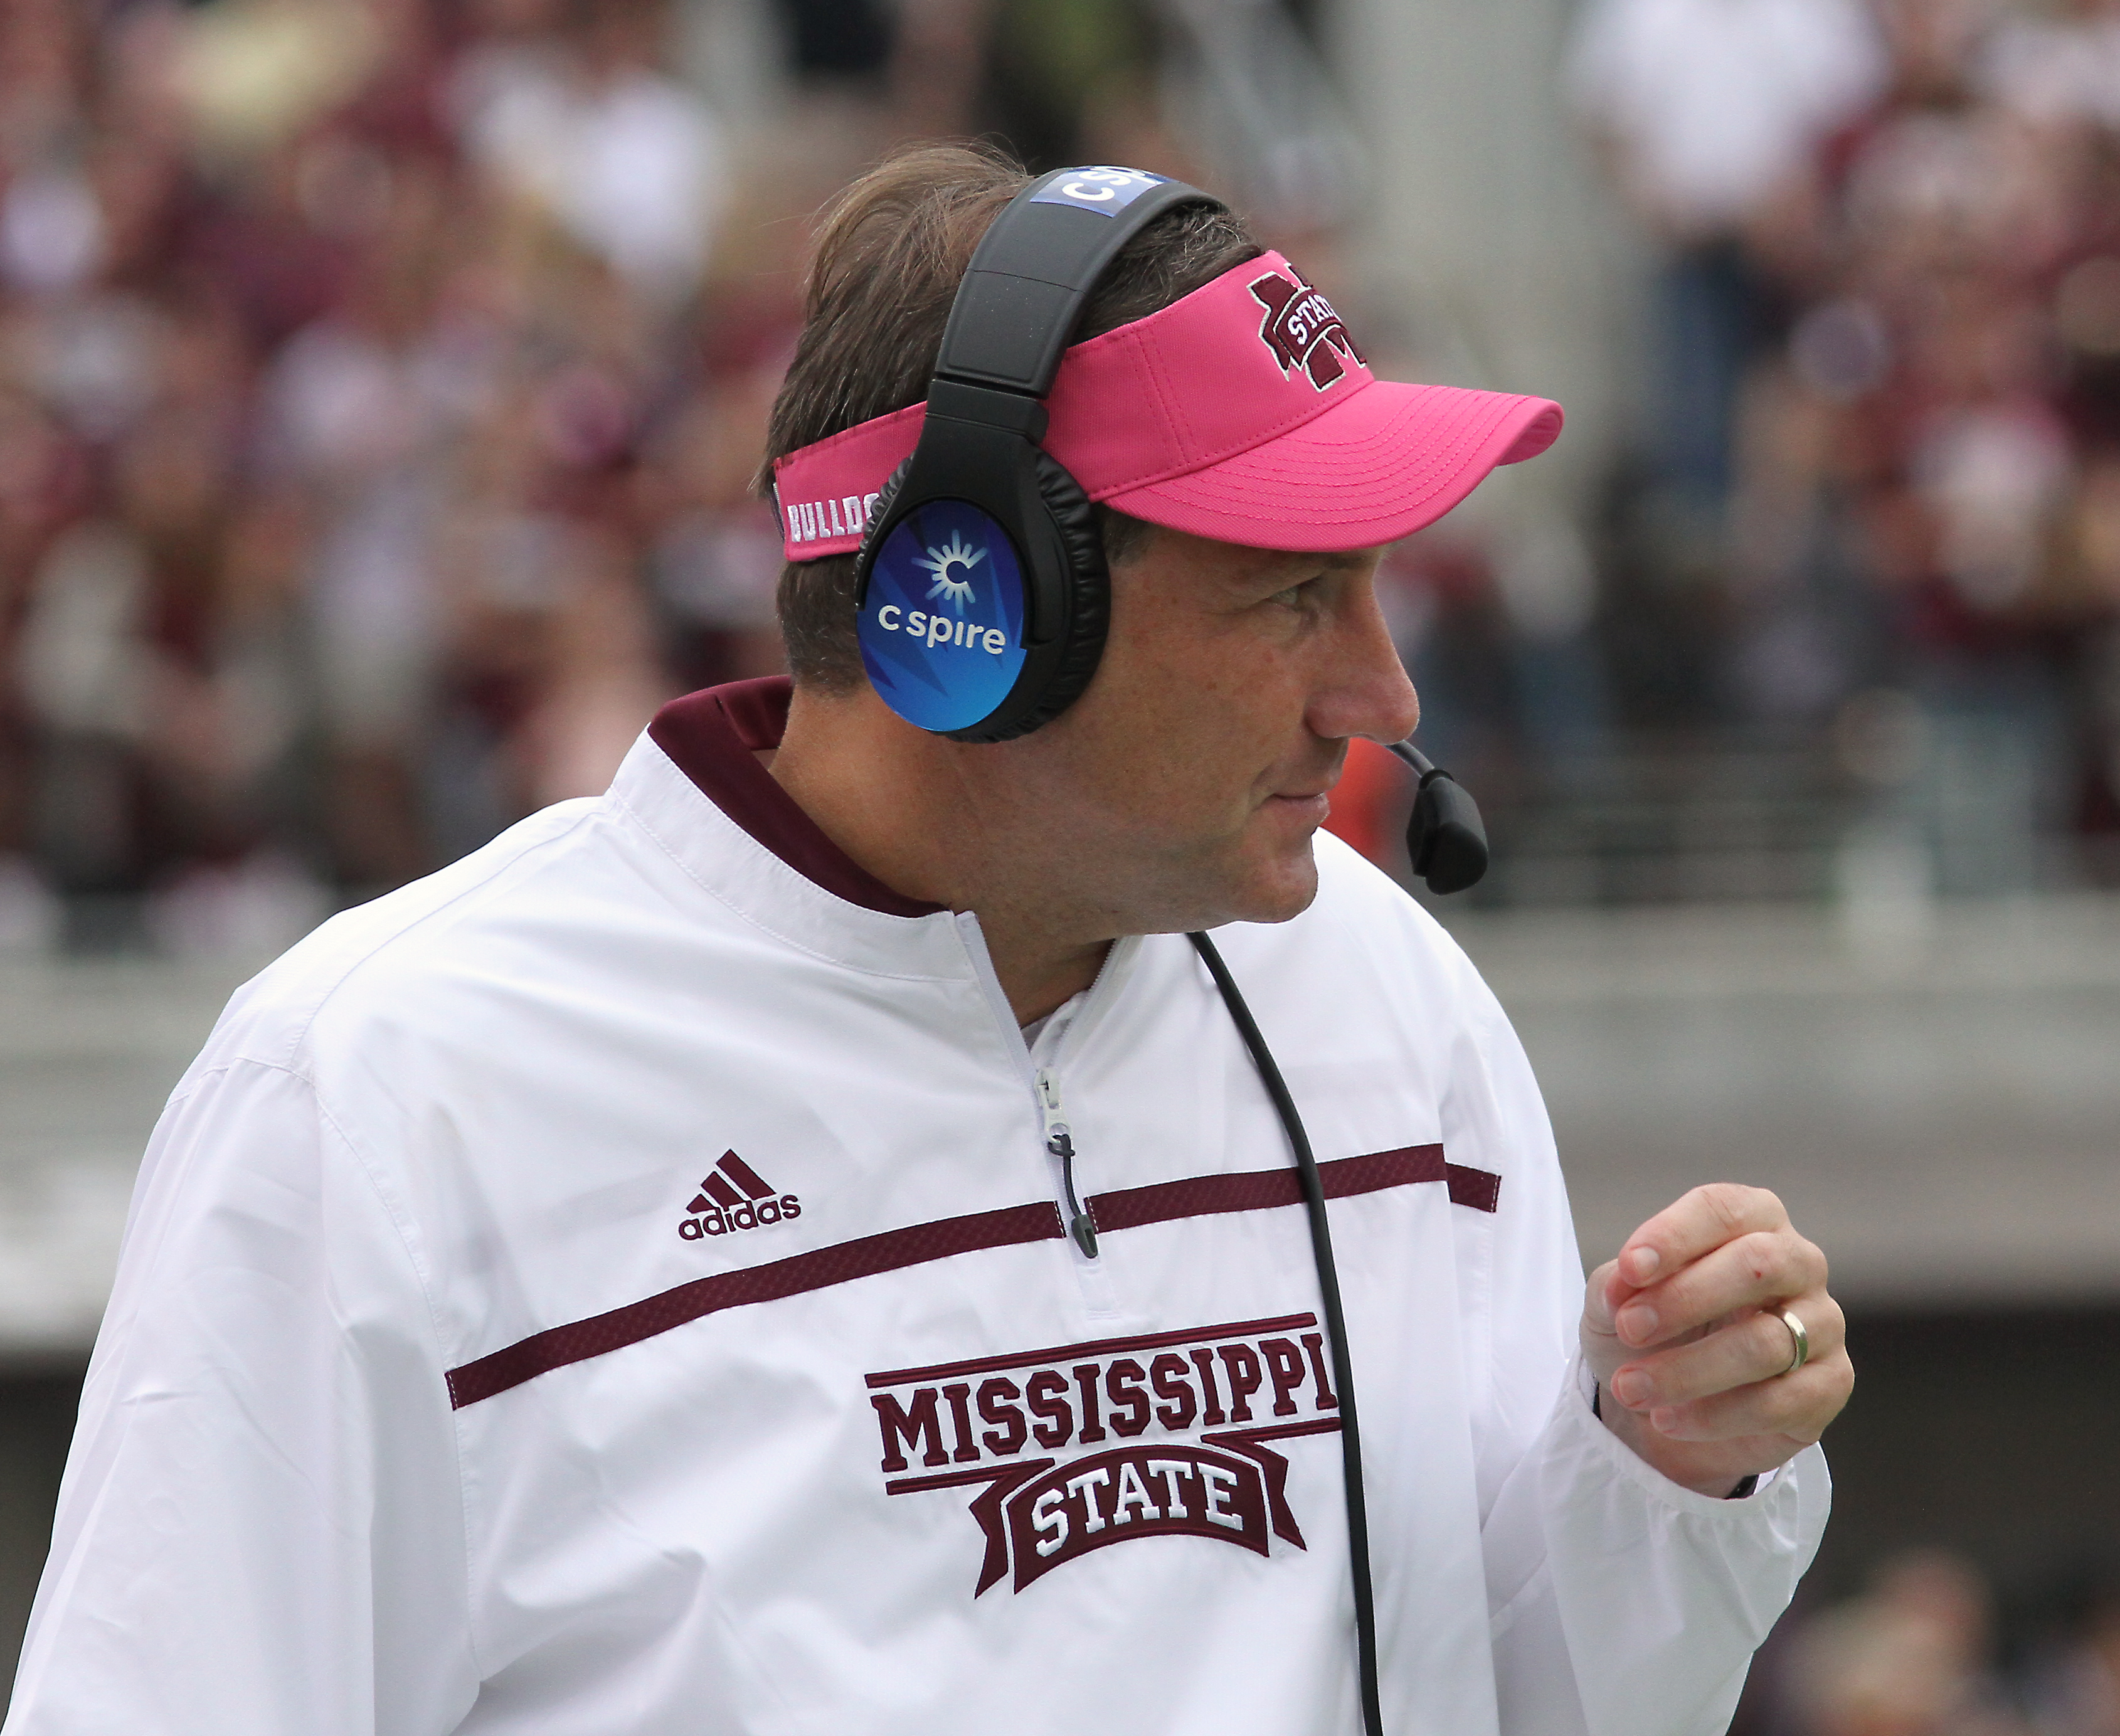 Mississippi State coach Dan Mullen reacts to a play during the first half of an NCAA college football game against Troy in Starkville, Miss., Saturday, Oct. 10, 2015. (AP Photo/Jim Lytle)